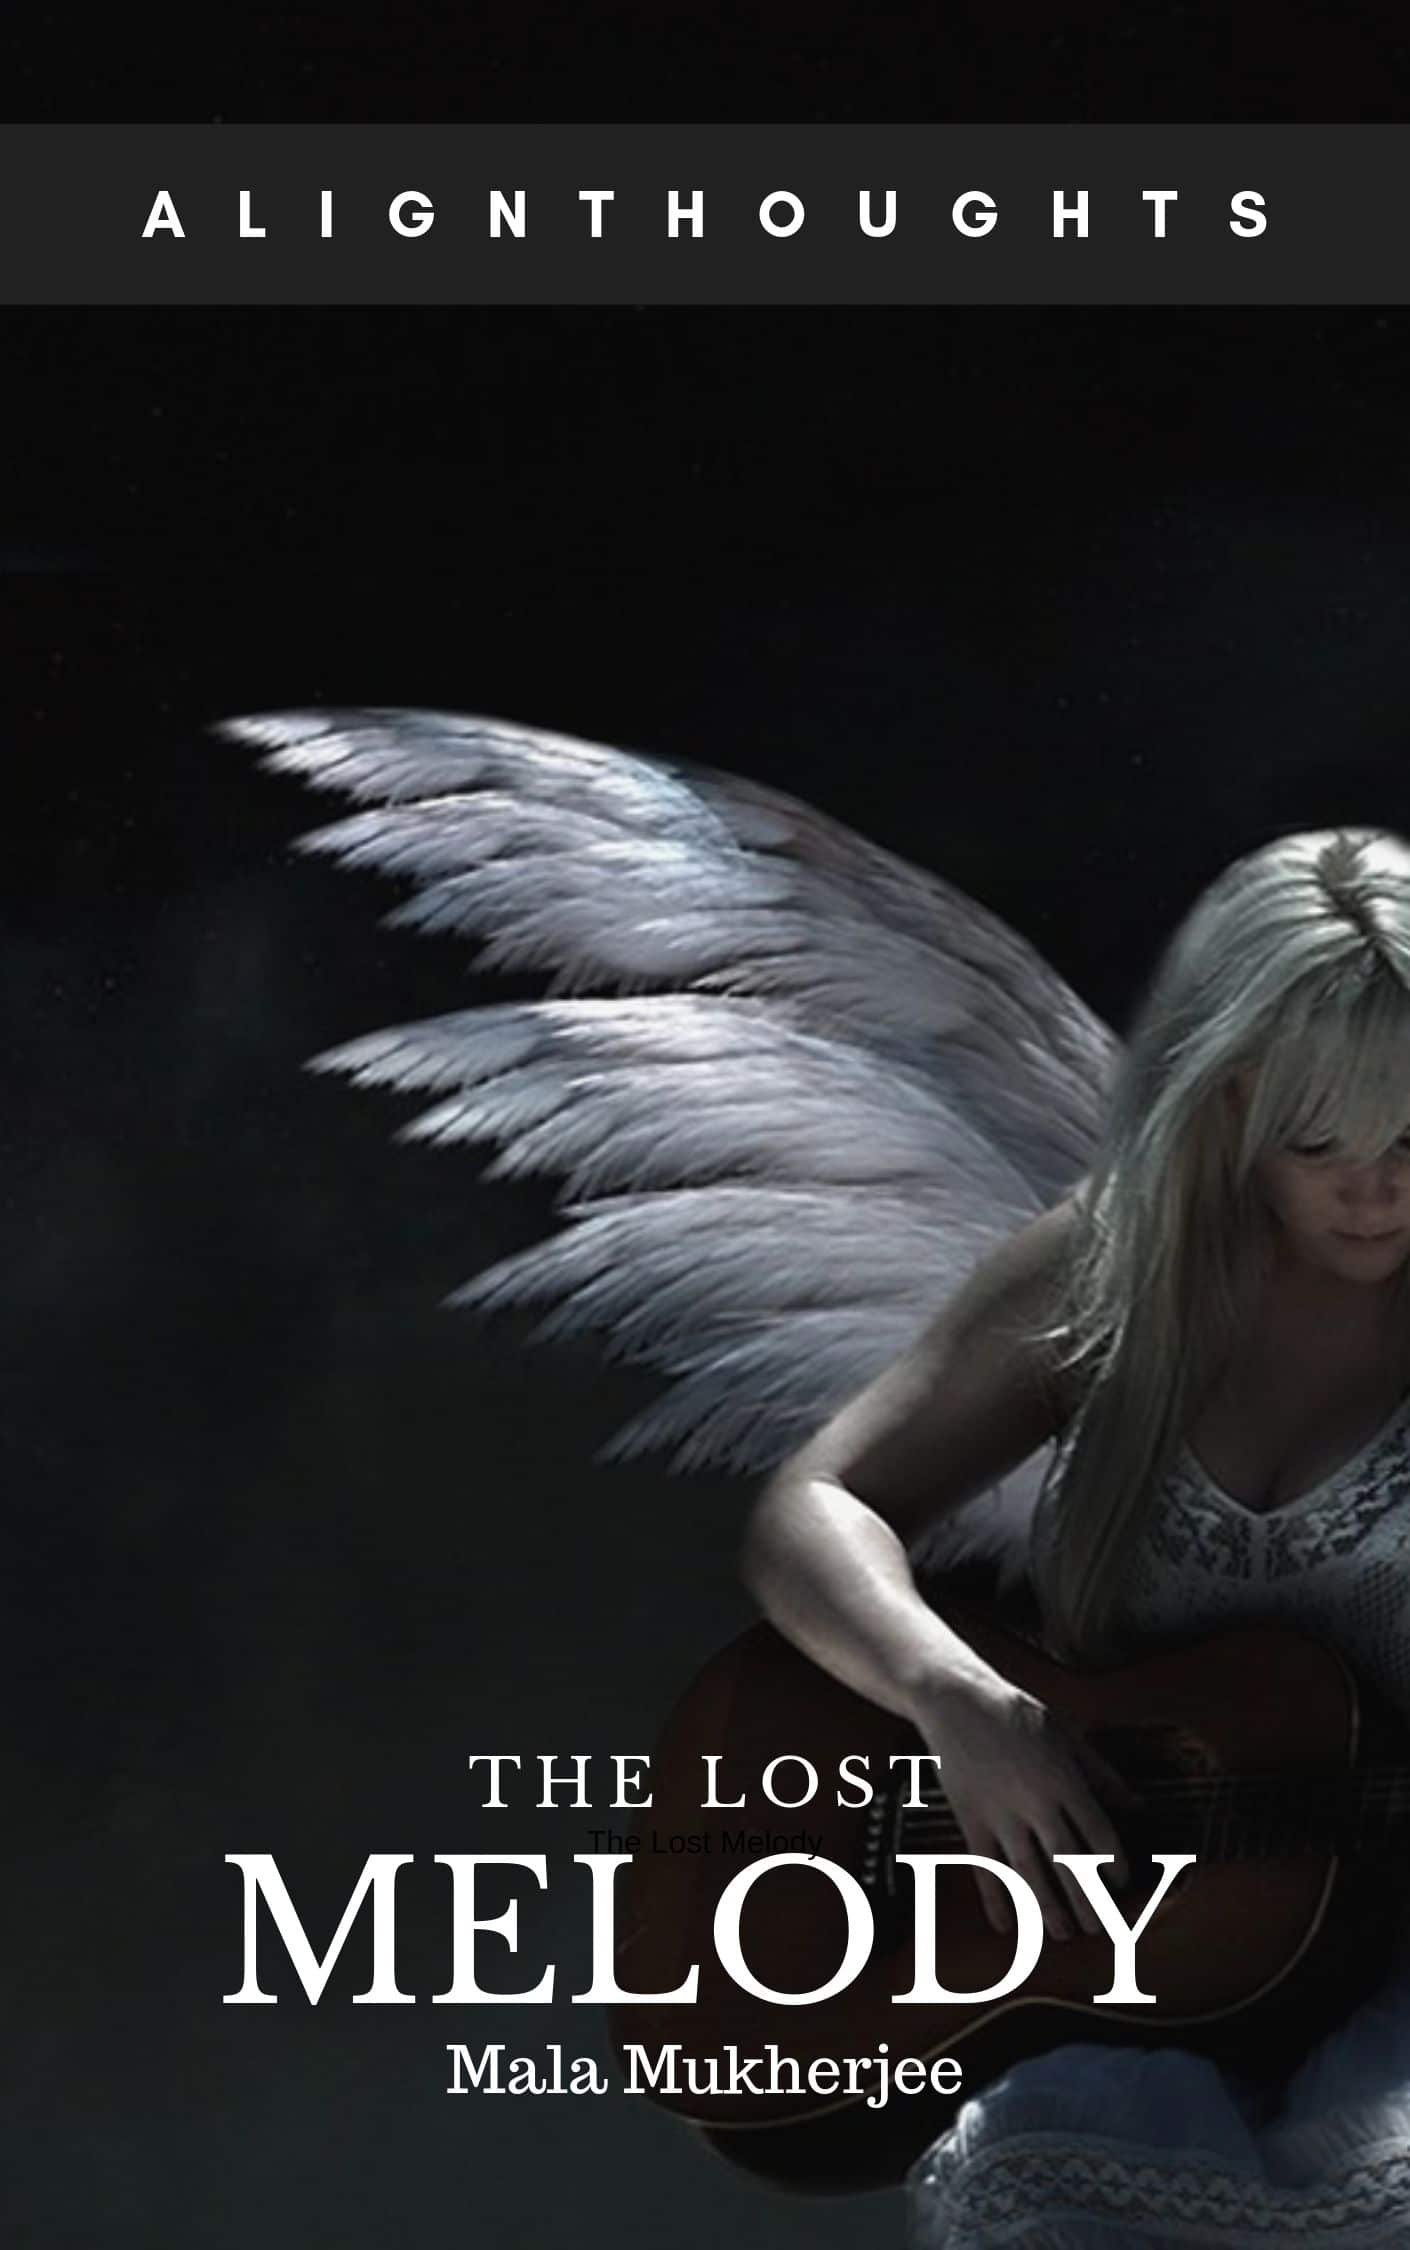 The Lost Melody - AT